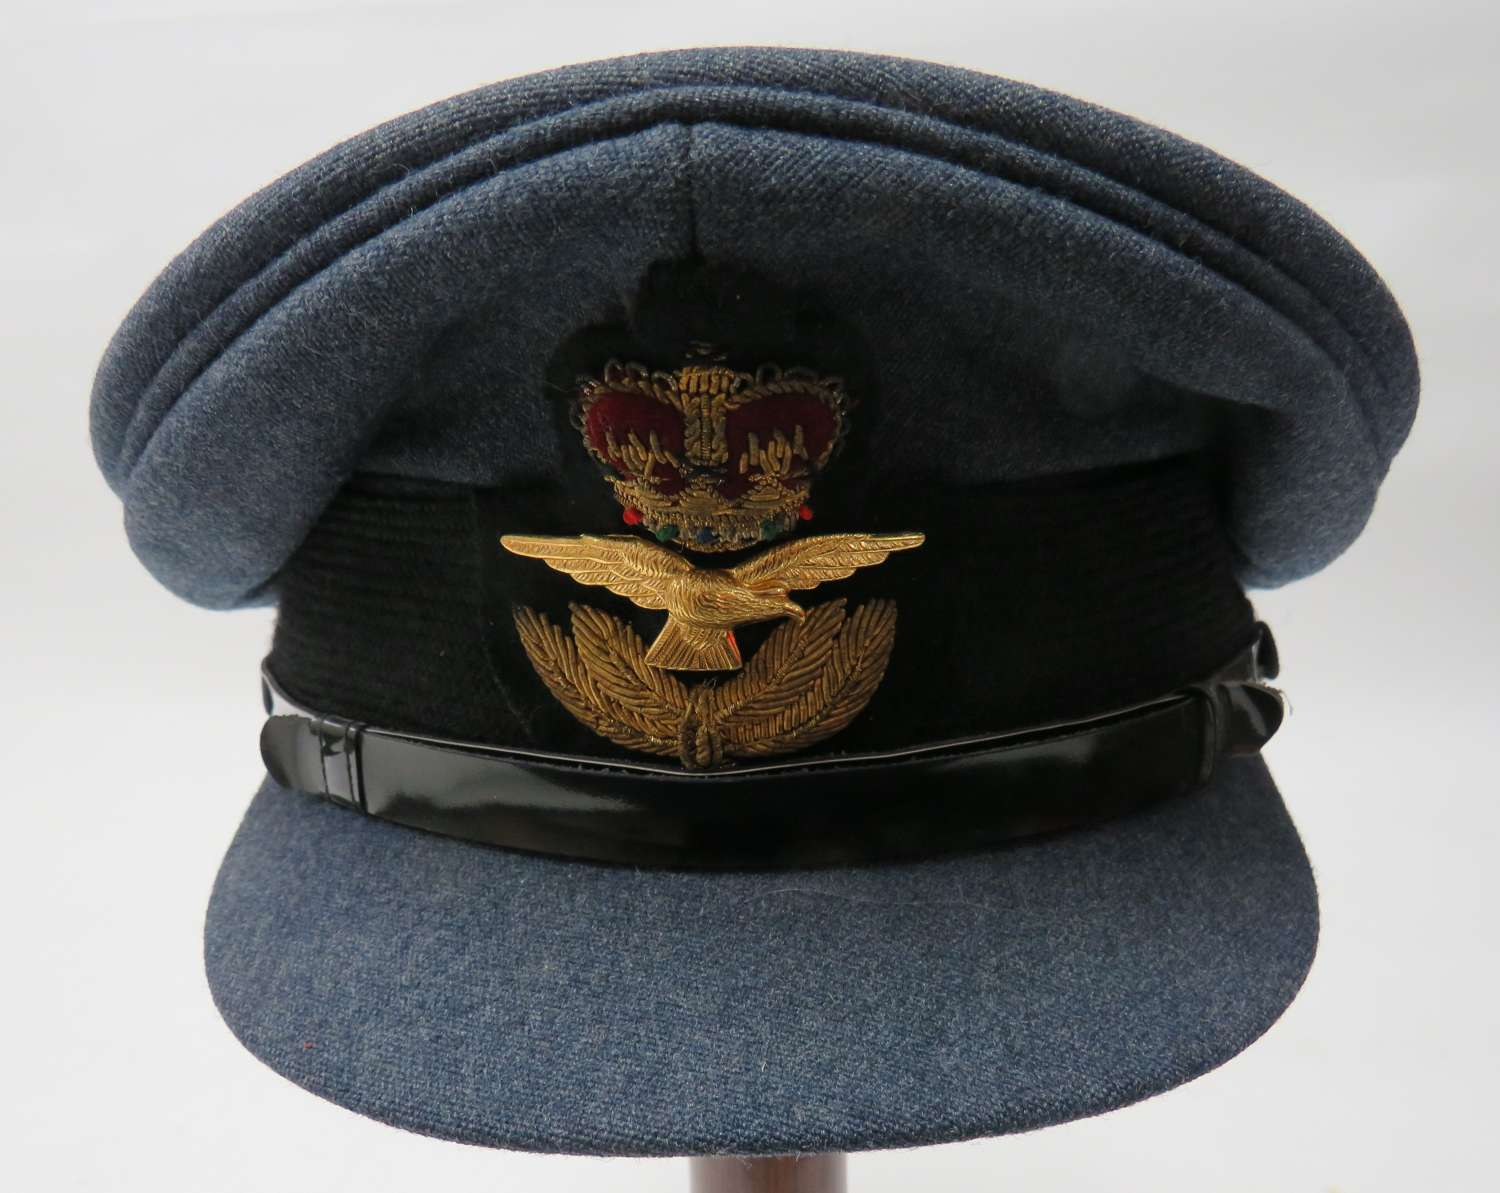 Post 1953 Royal Air Force Officers Service Dress Cap